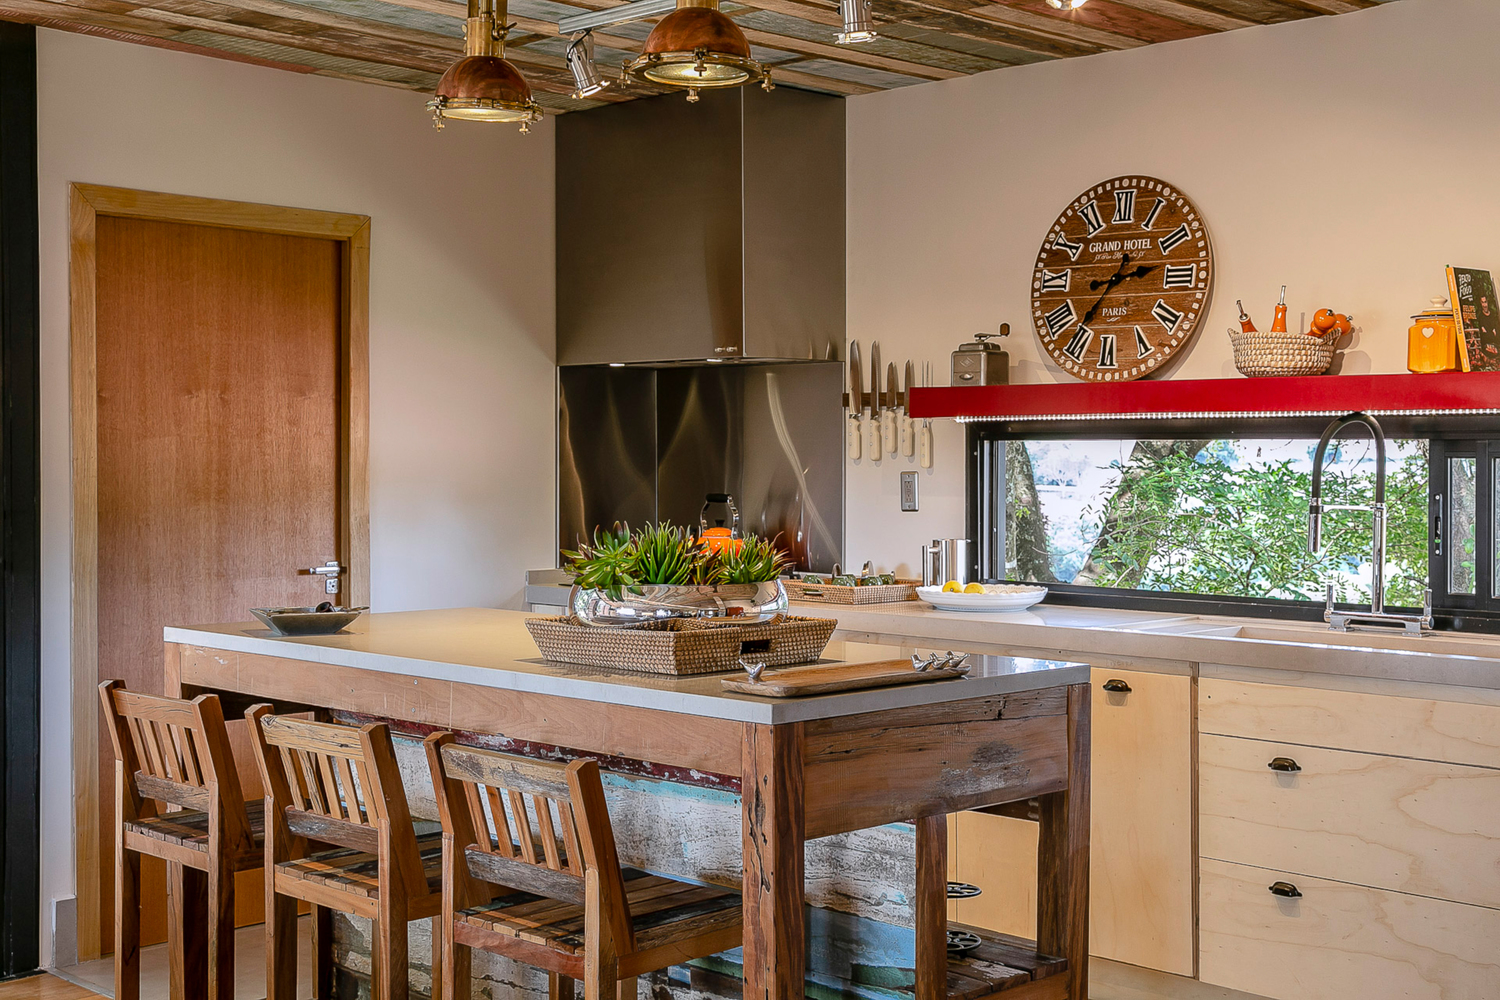 The kitchen features a horizontal backsplash window which offers a view of the tree canopies